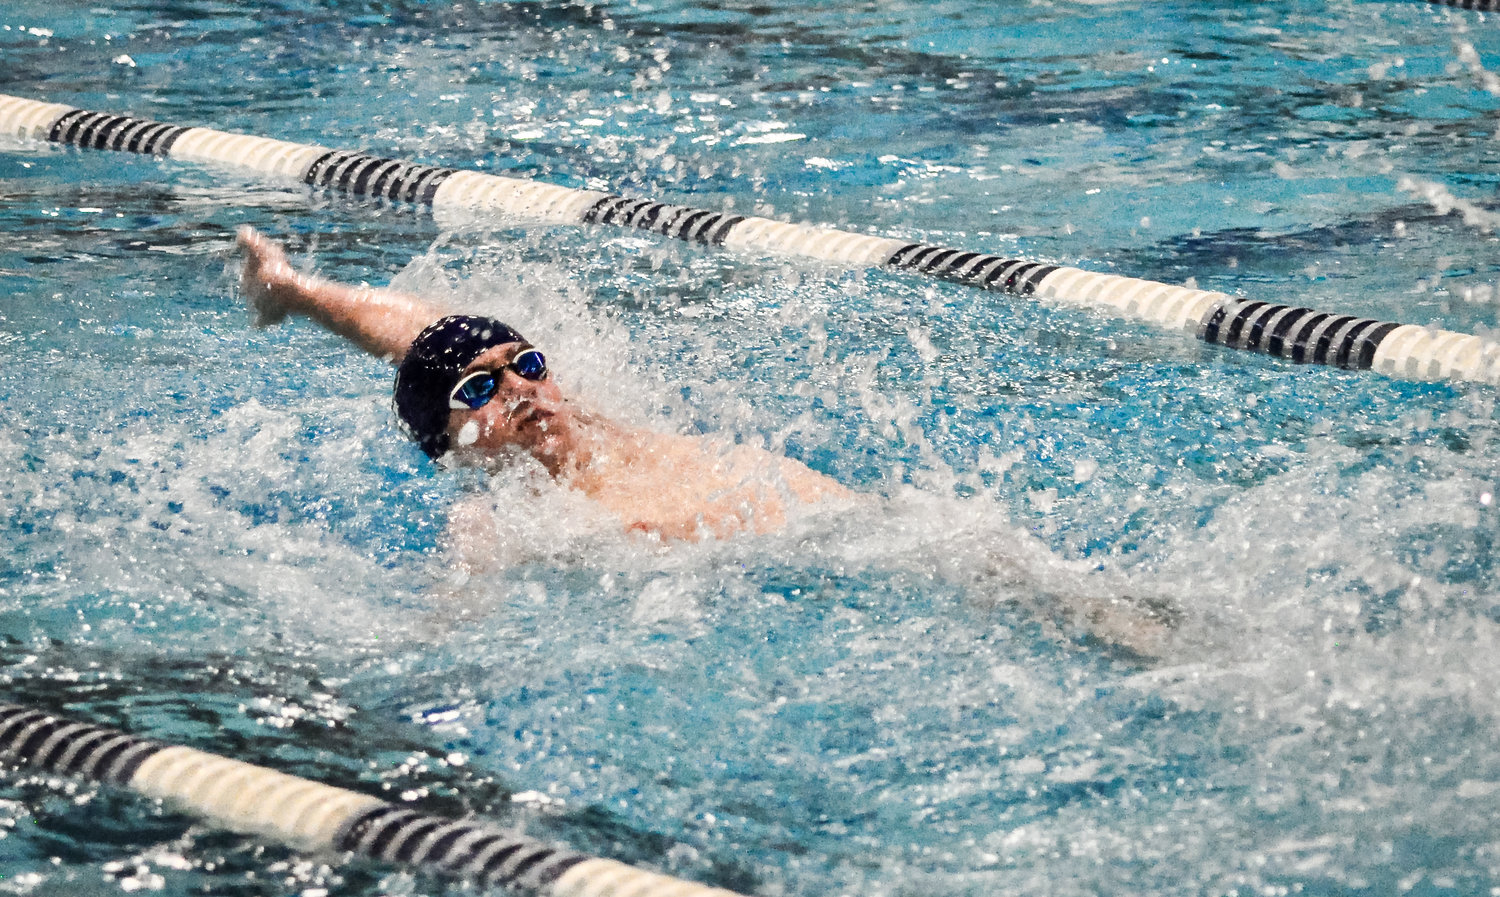 Severna Park's Tyler Moran won the 100 yard backstroke with a time of 56.24 seconds.